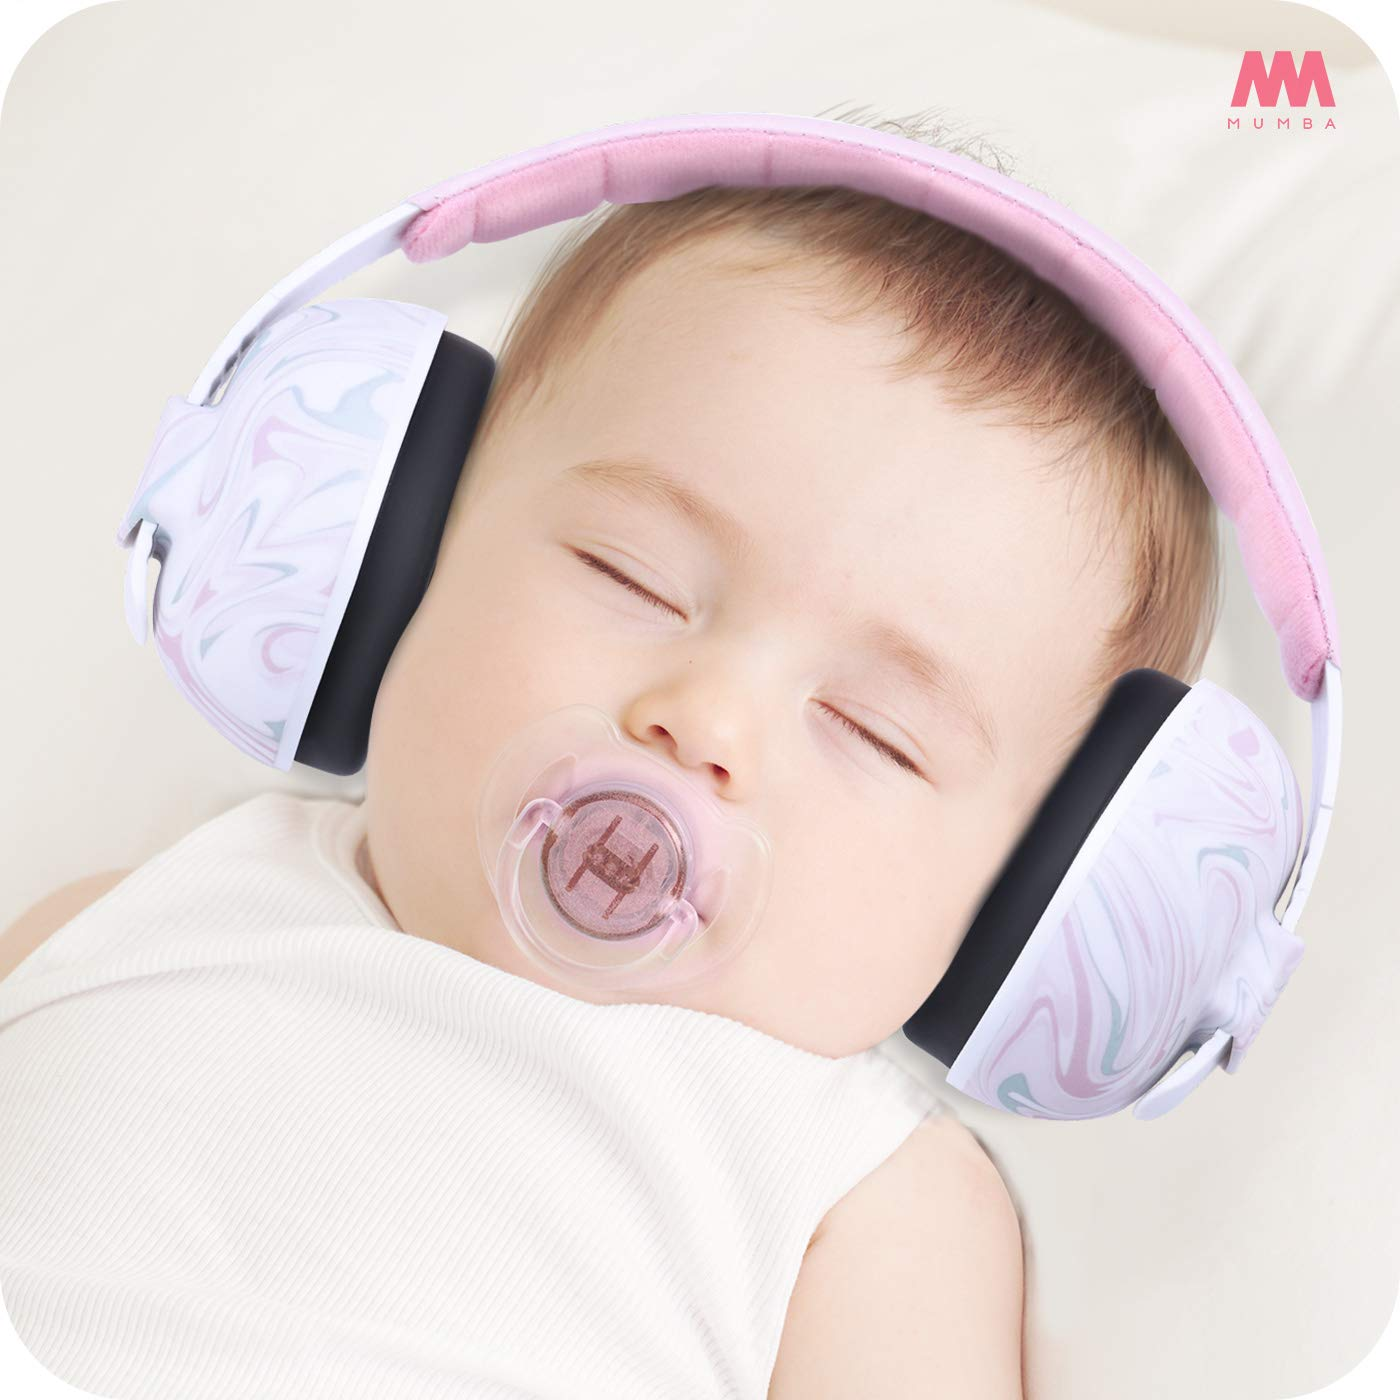 Mumba Baby Ear Protection - Adjustable Noise Cancelling Baby Headphones(0-3+ Years)